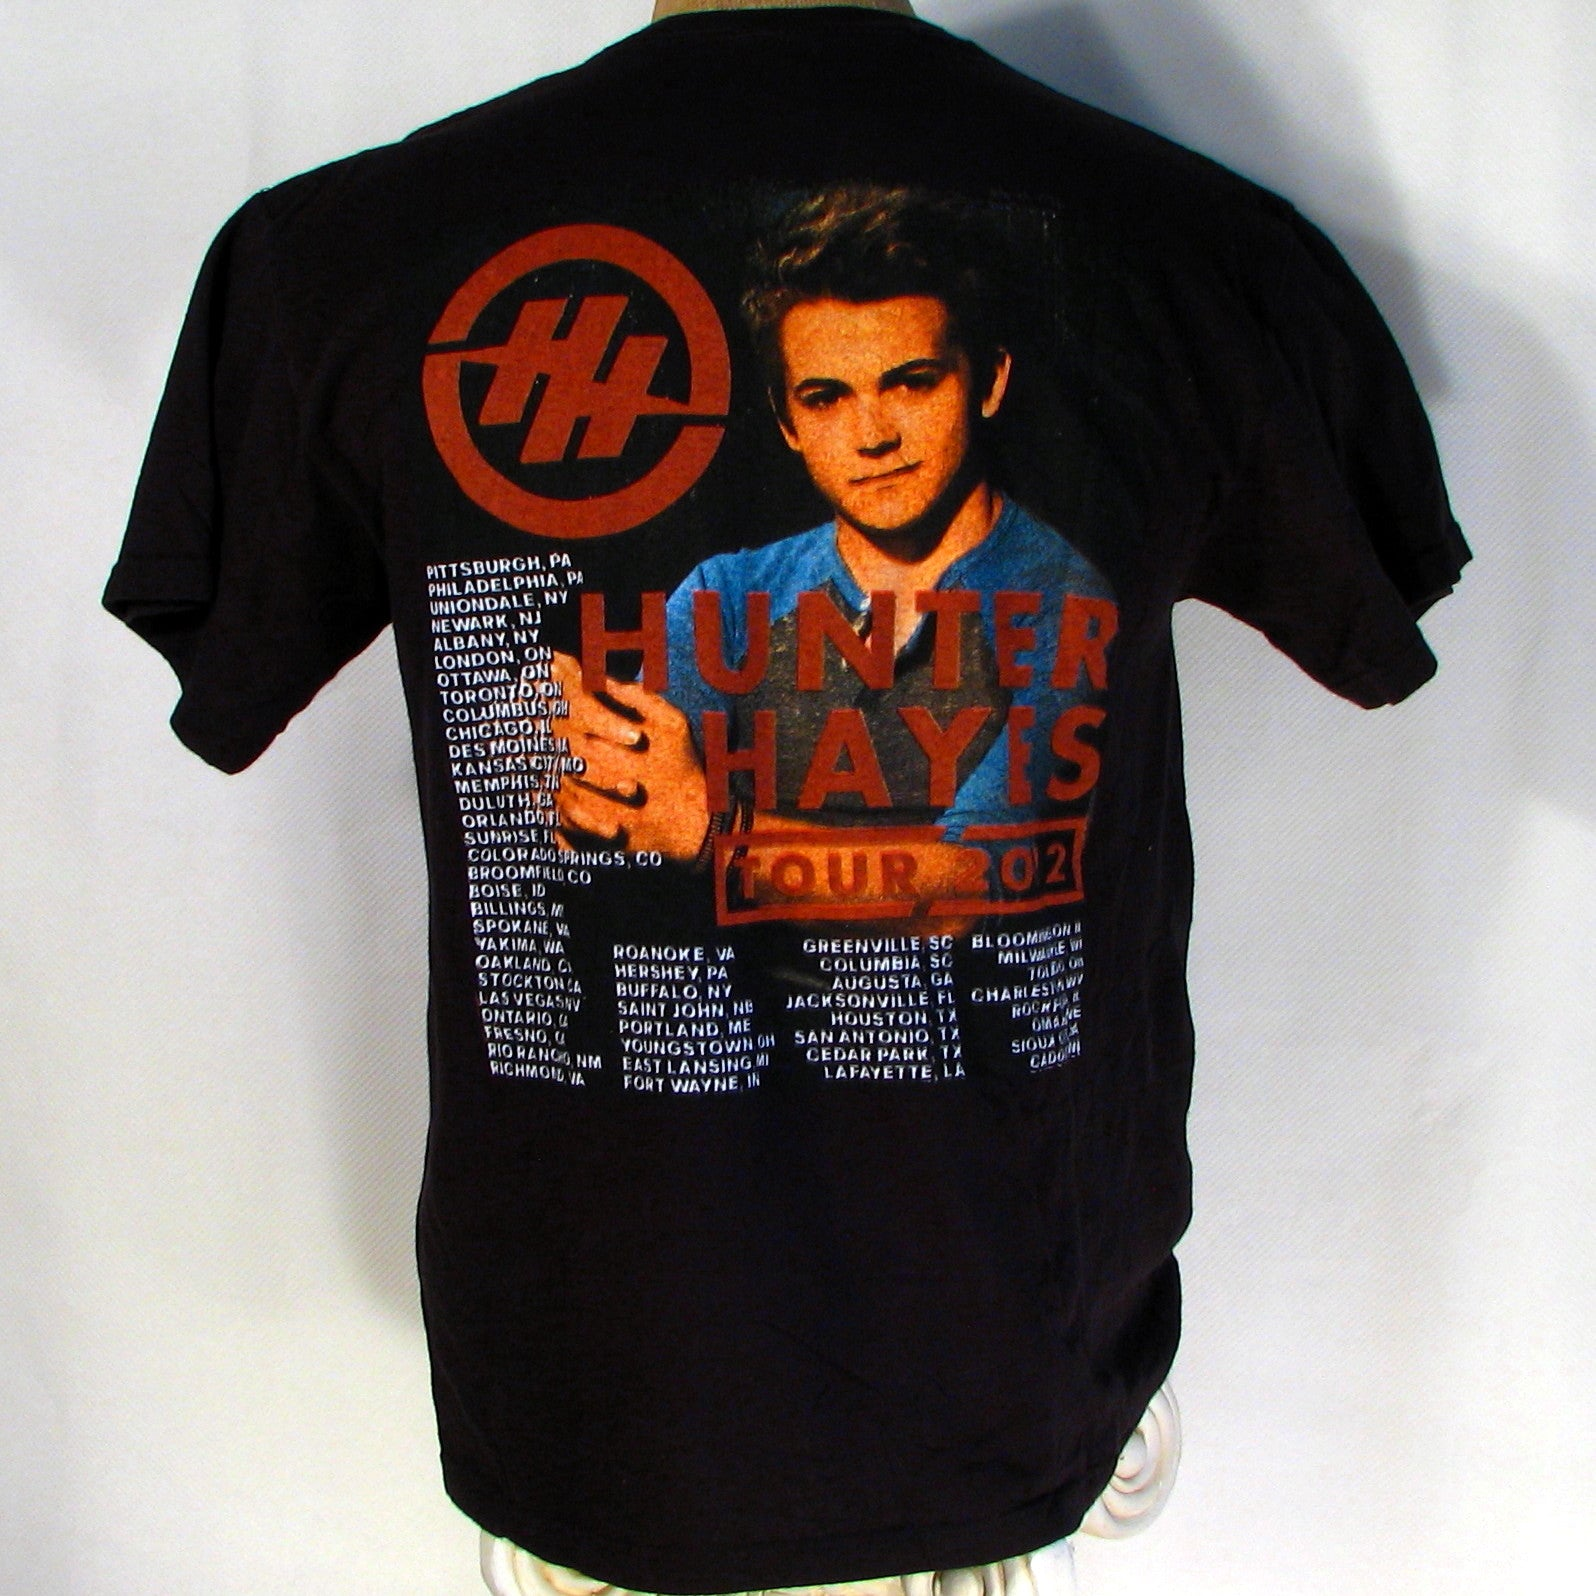 Carrie Underwood/Hunter Hayes 2012 Blown away Tour T-Shirt